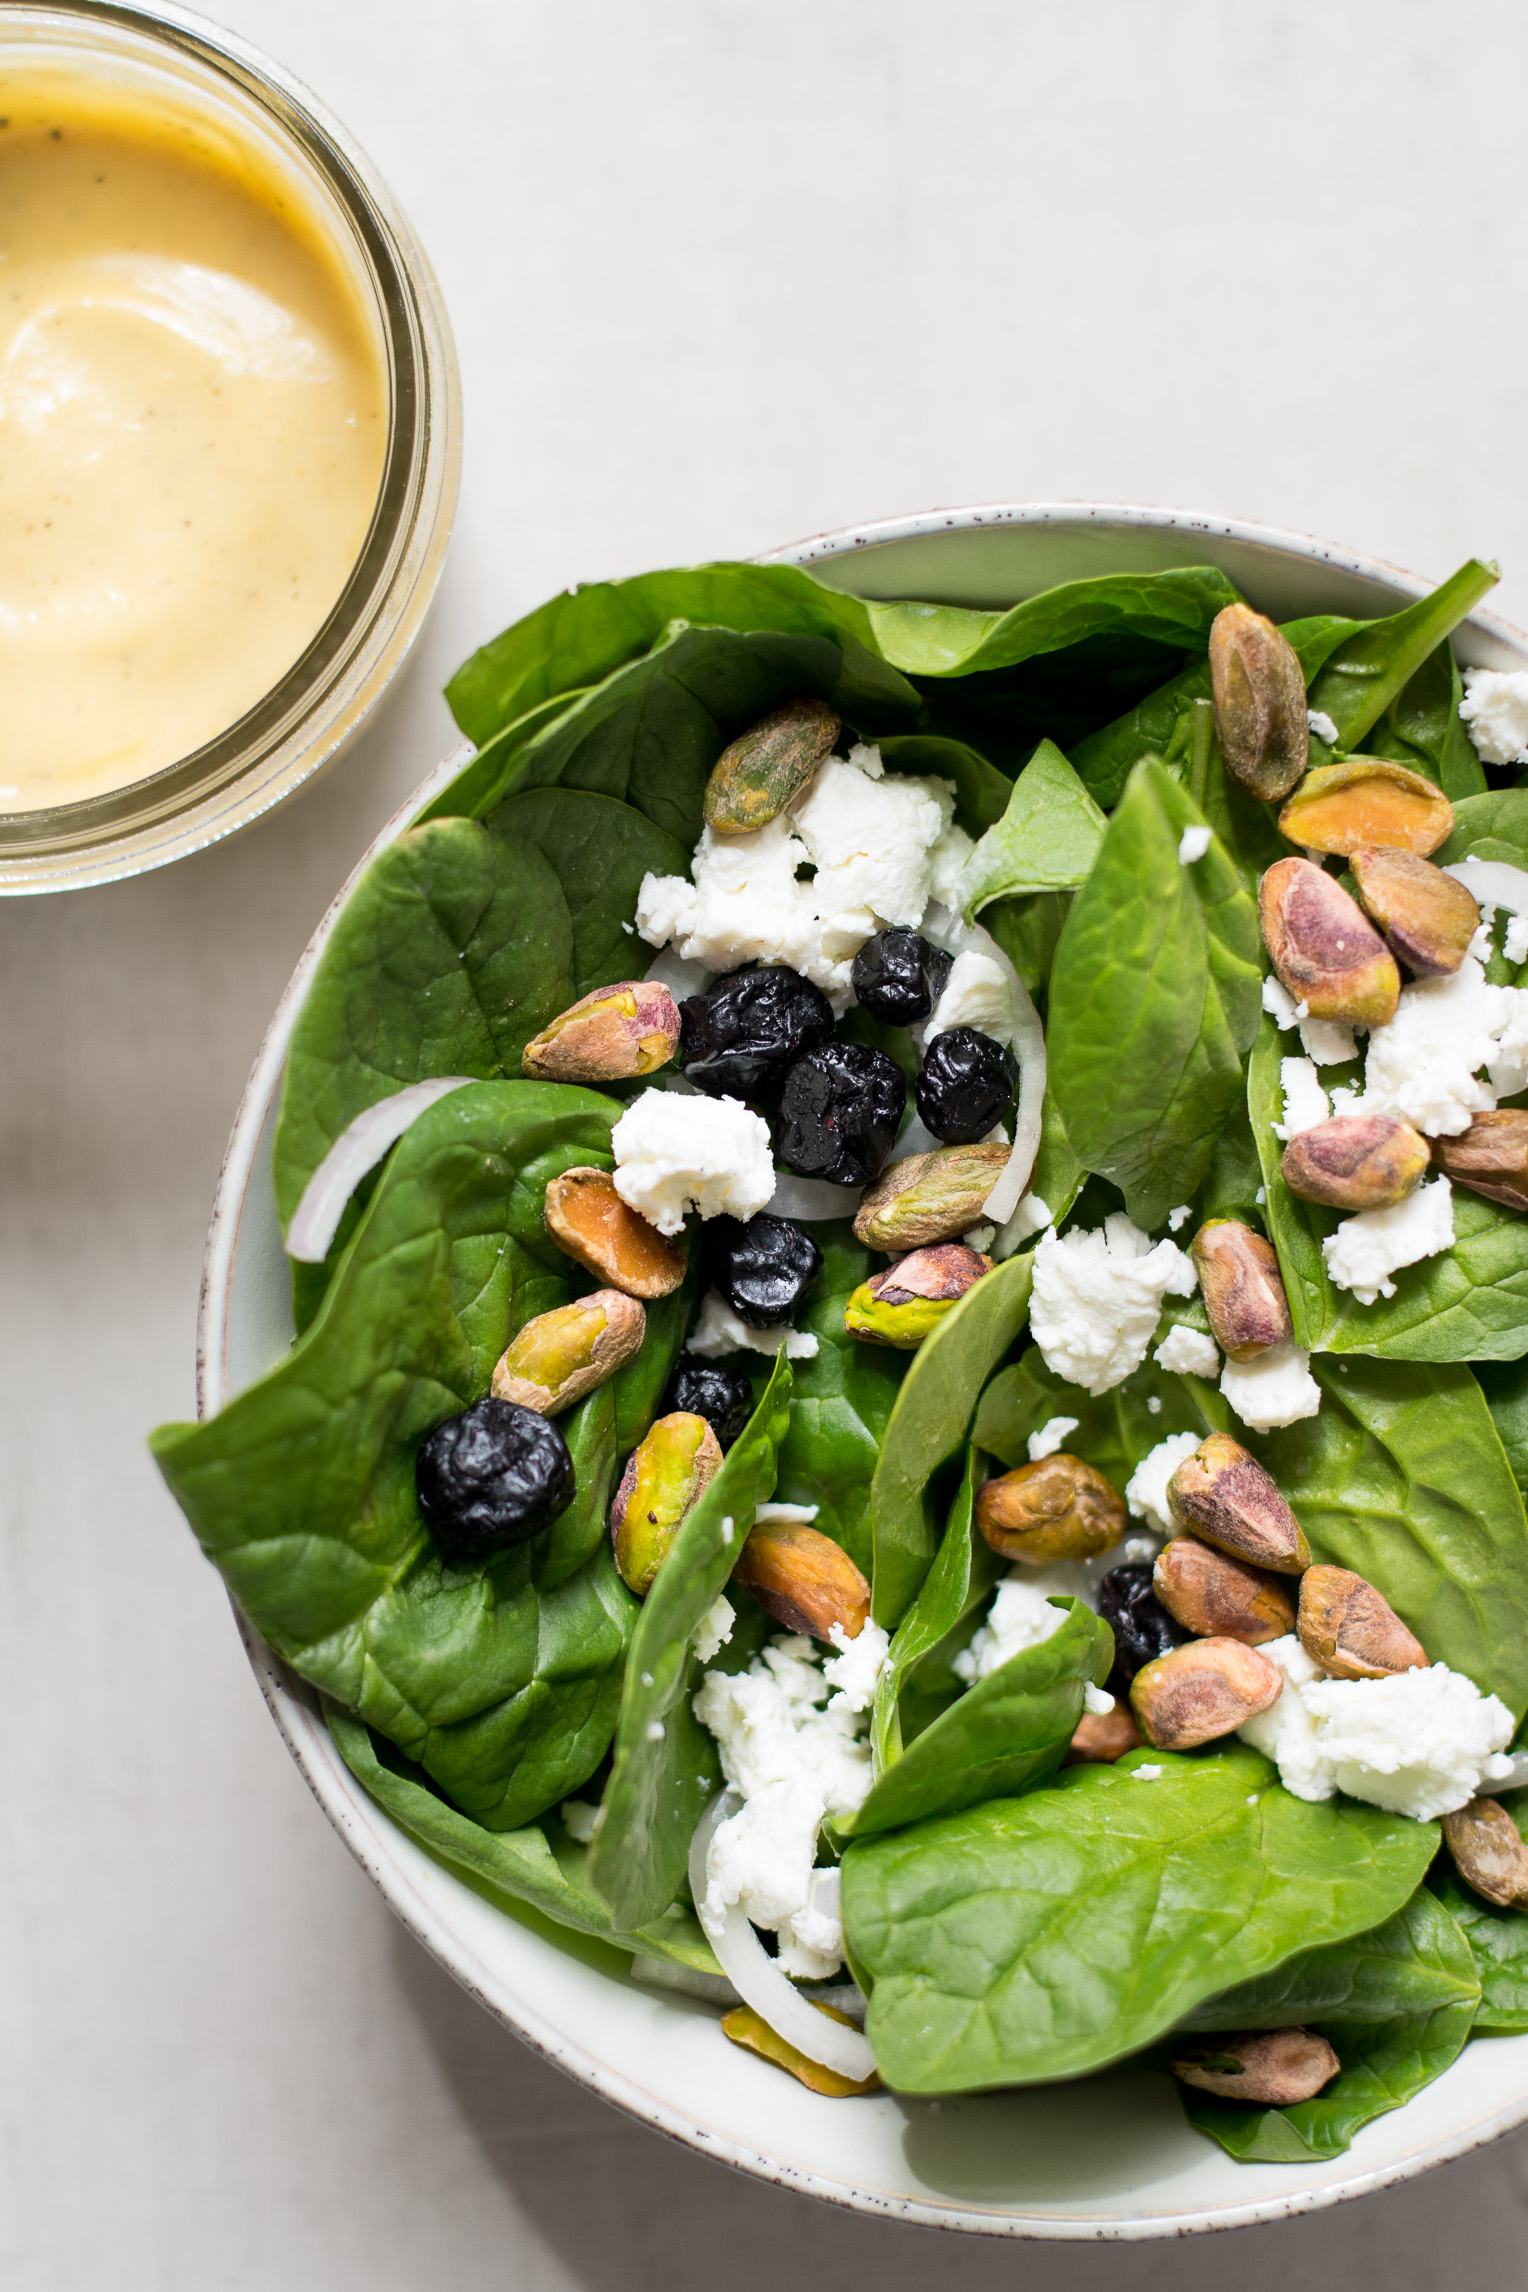 Spinach Salad with Maple Dijon Dressing